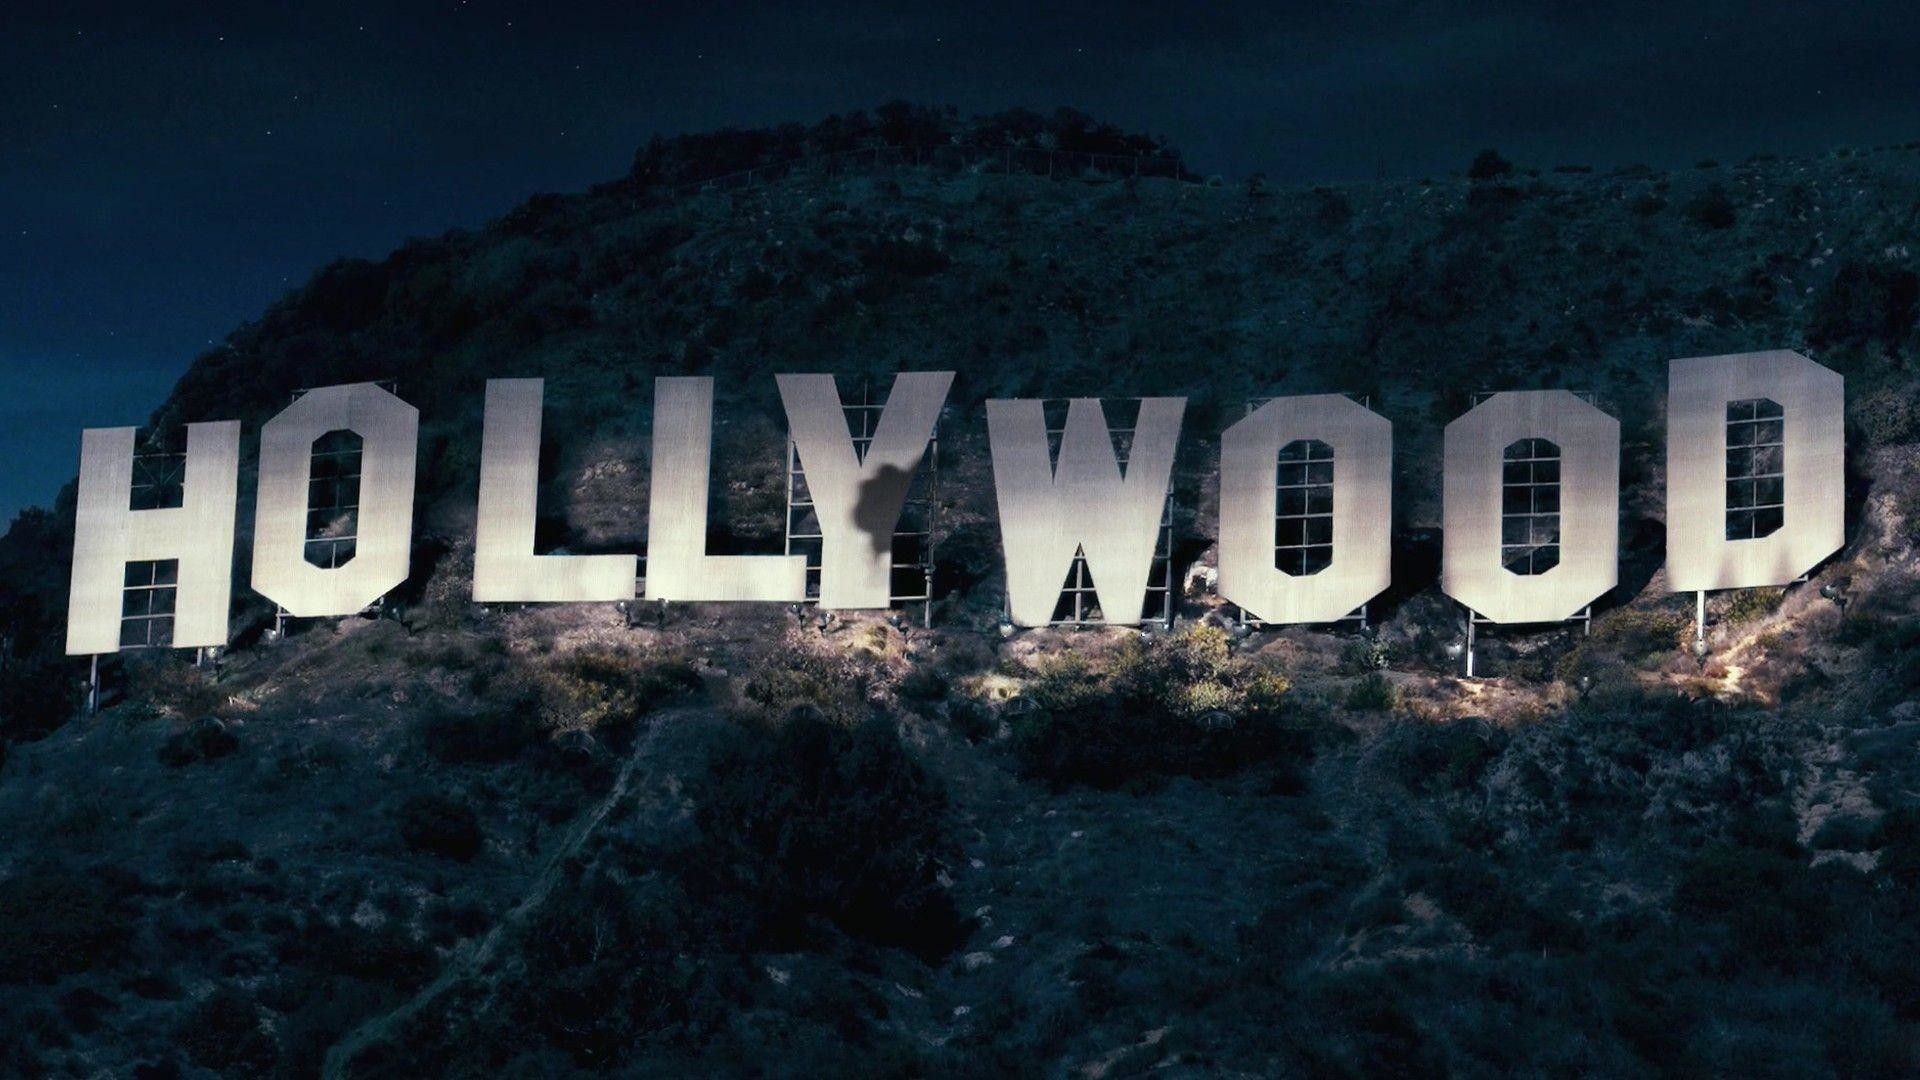 Hollywood Sign Wallpapers   Top Hollywood Sign Backgrounds 1920x1080